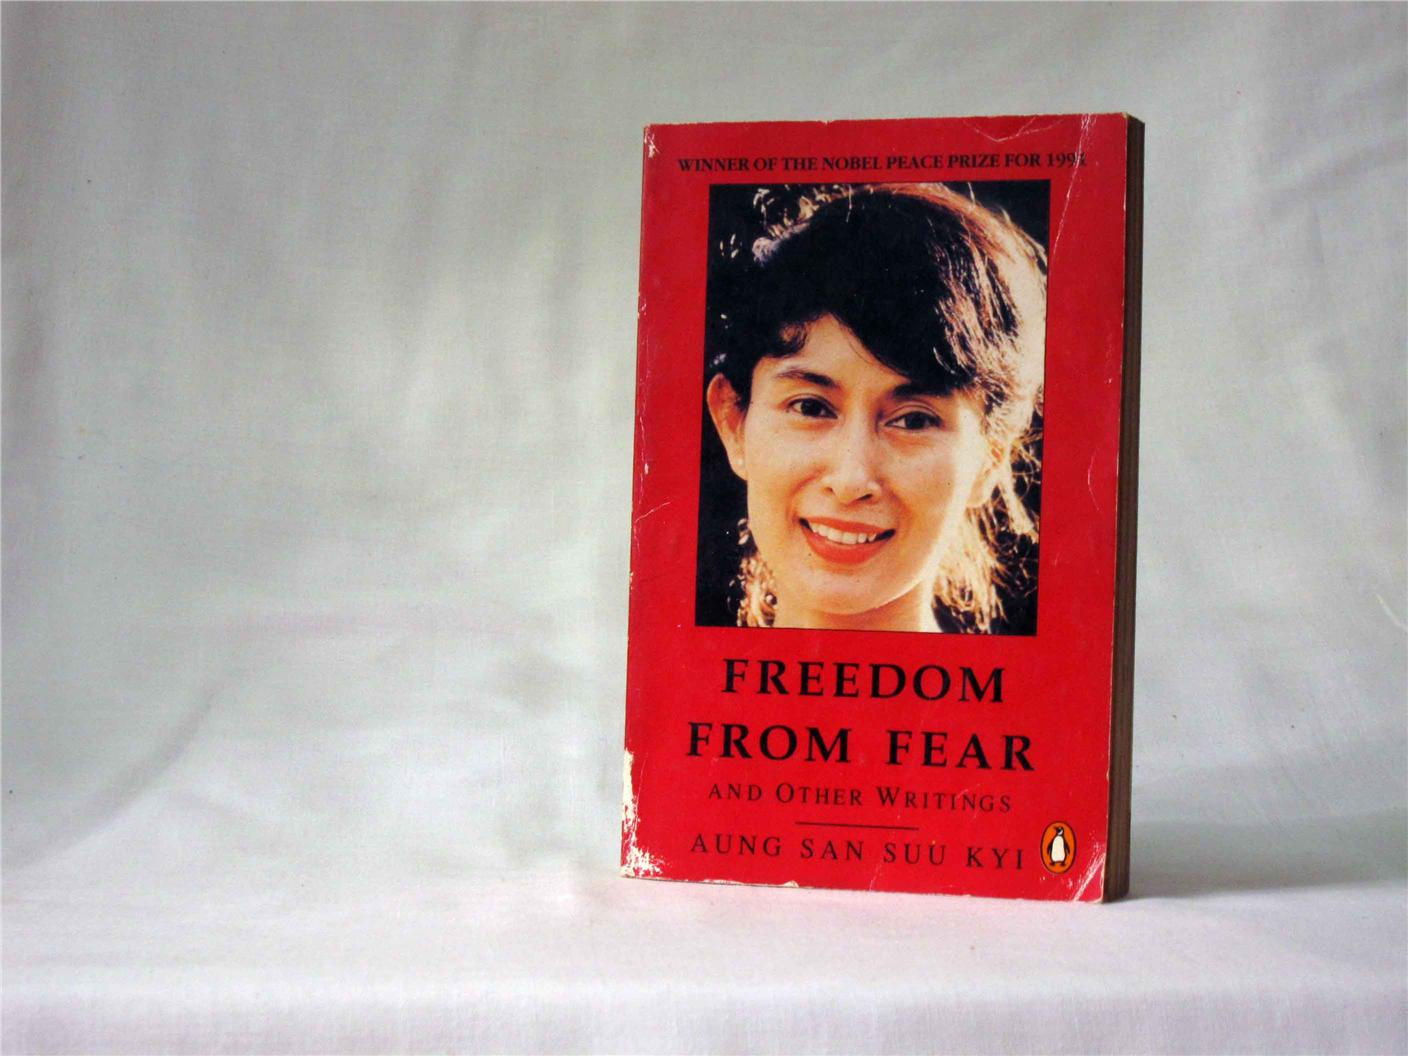 aung san suu kyi dom from fear end pm  aung san suu kyi dom from fear and other writings